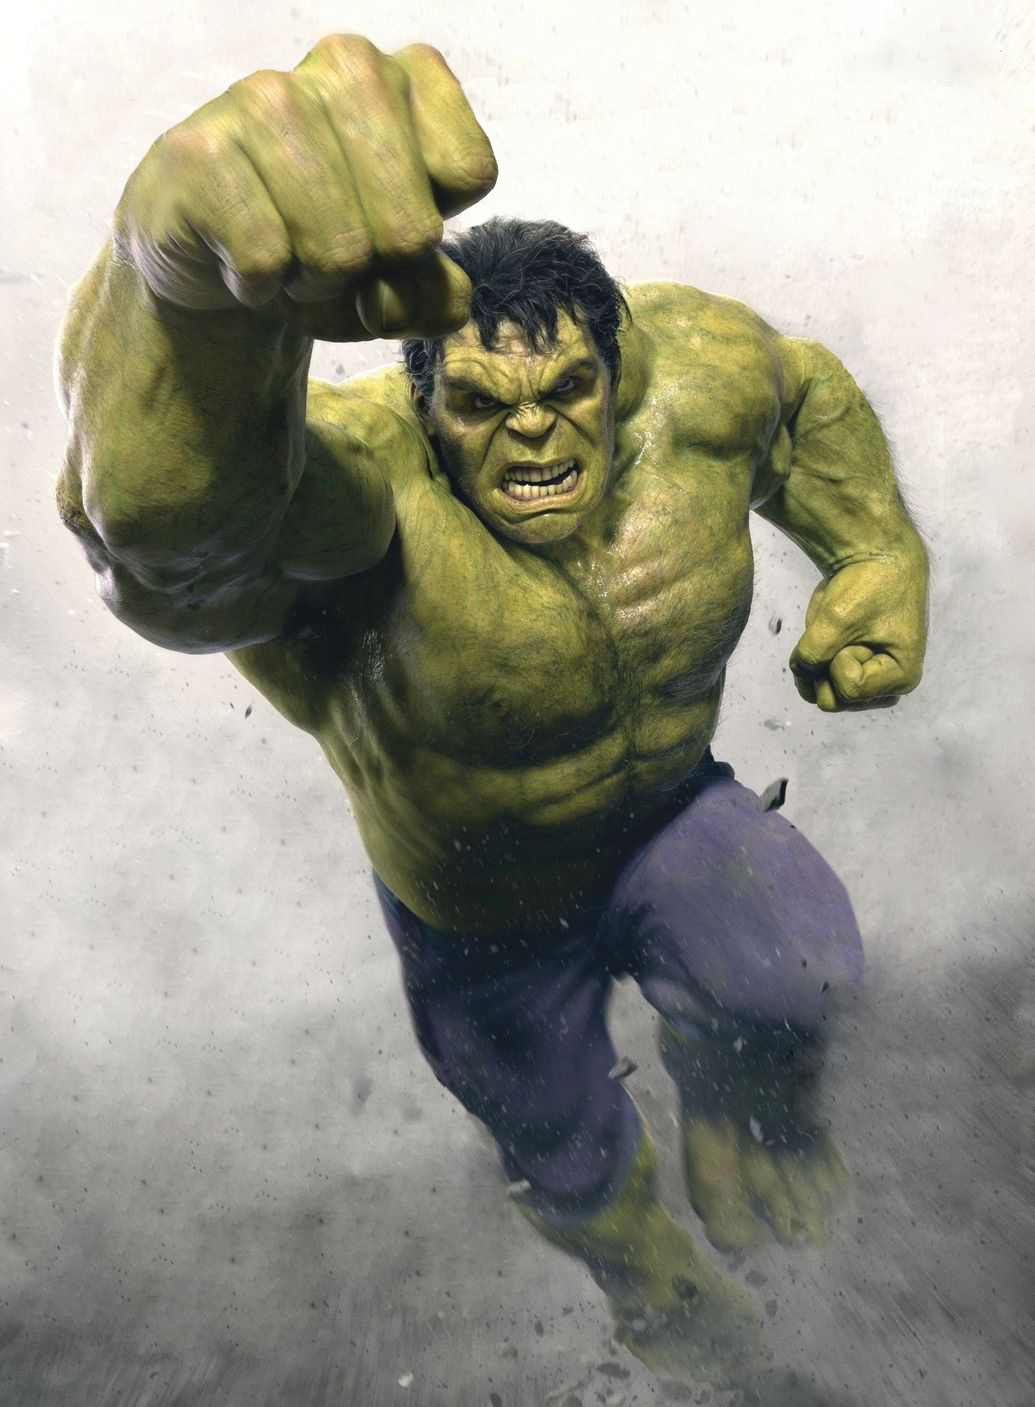 This is a photo of Inventive Picture of the Hulk